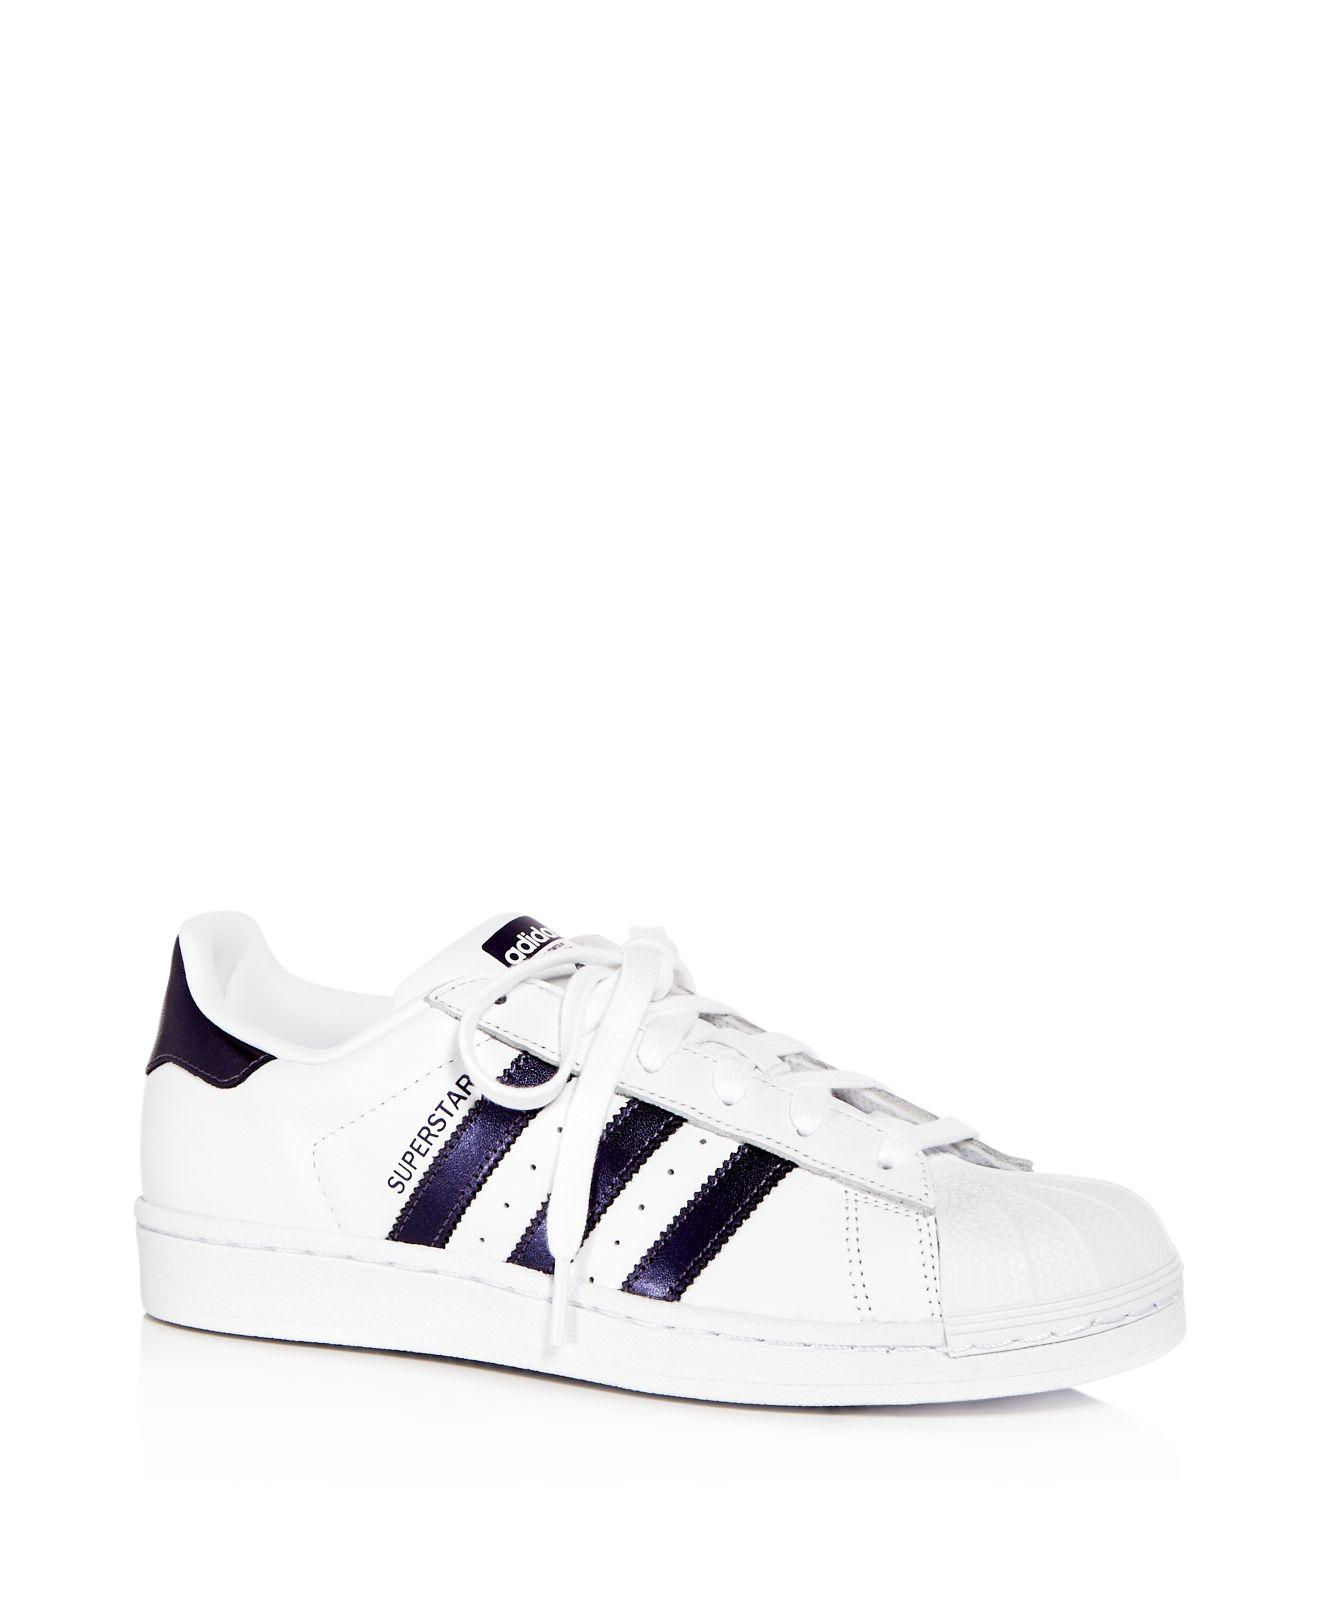 Lyst Mujeres Adidas Superstar Leather Lace - up zapatilla en color blanco